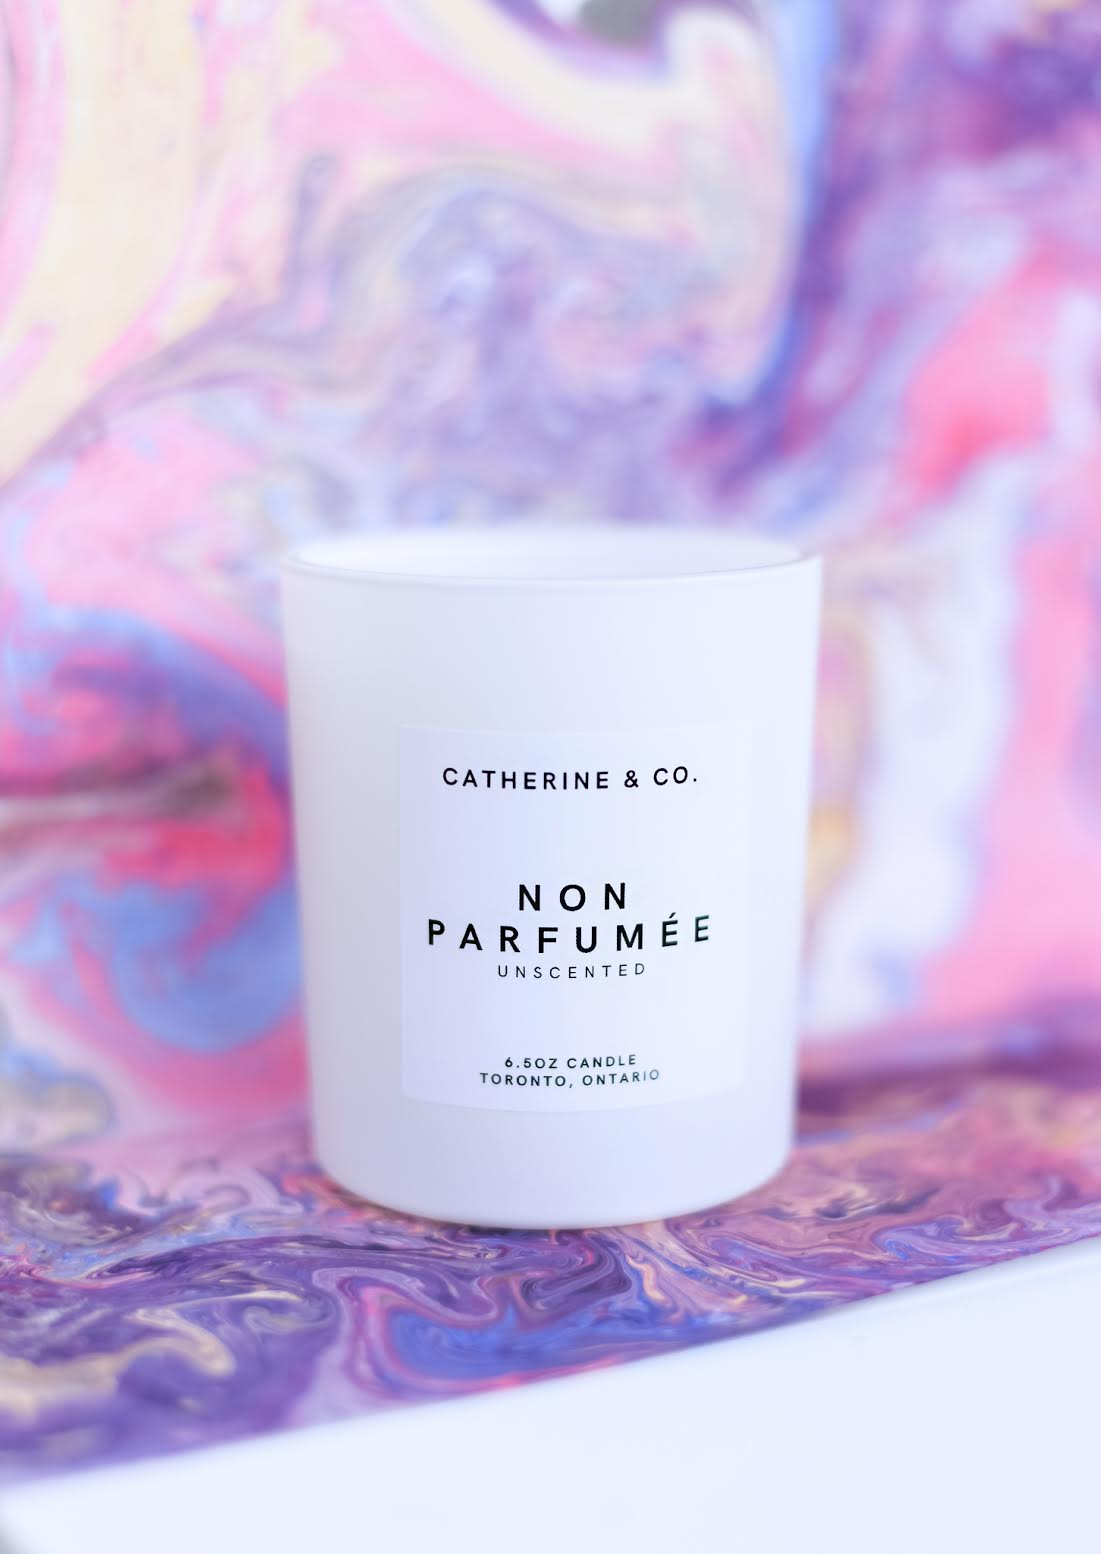 Catherine & Co. Non Parfumée Candle (Unscented)